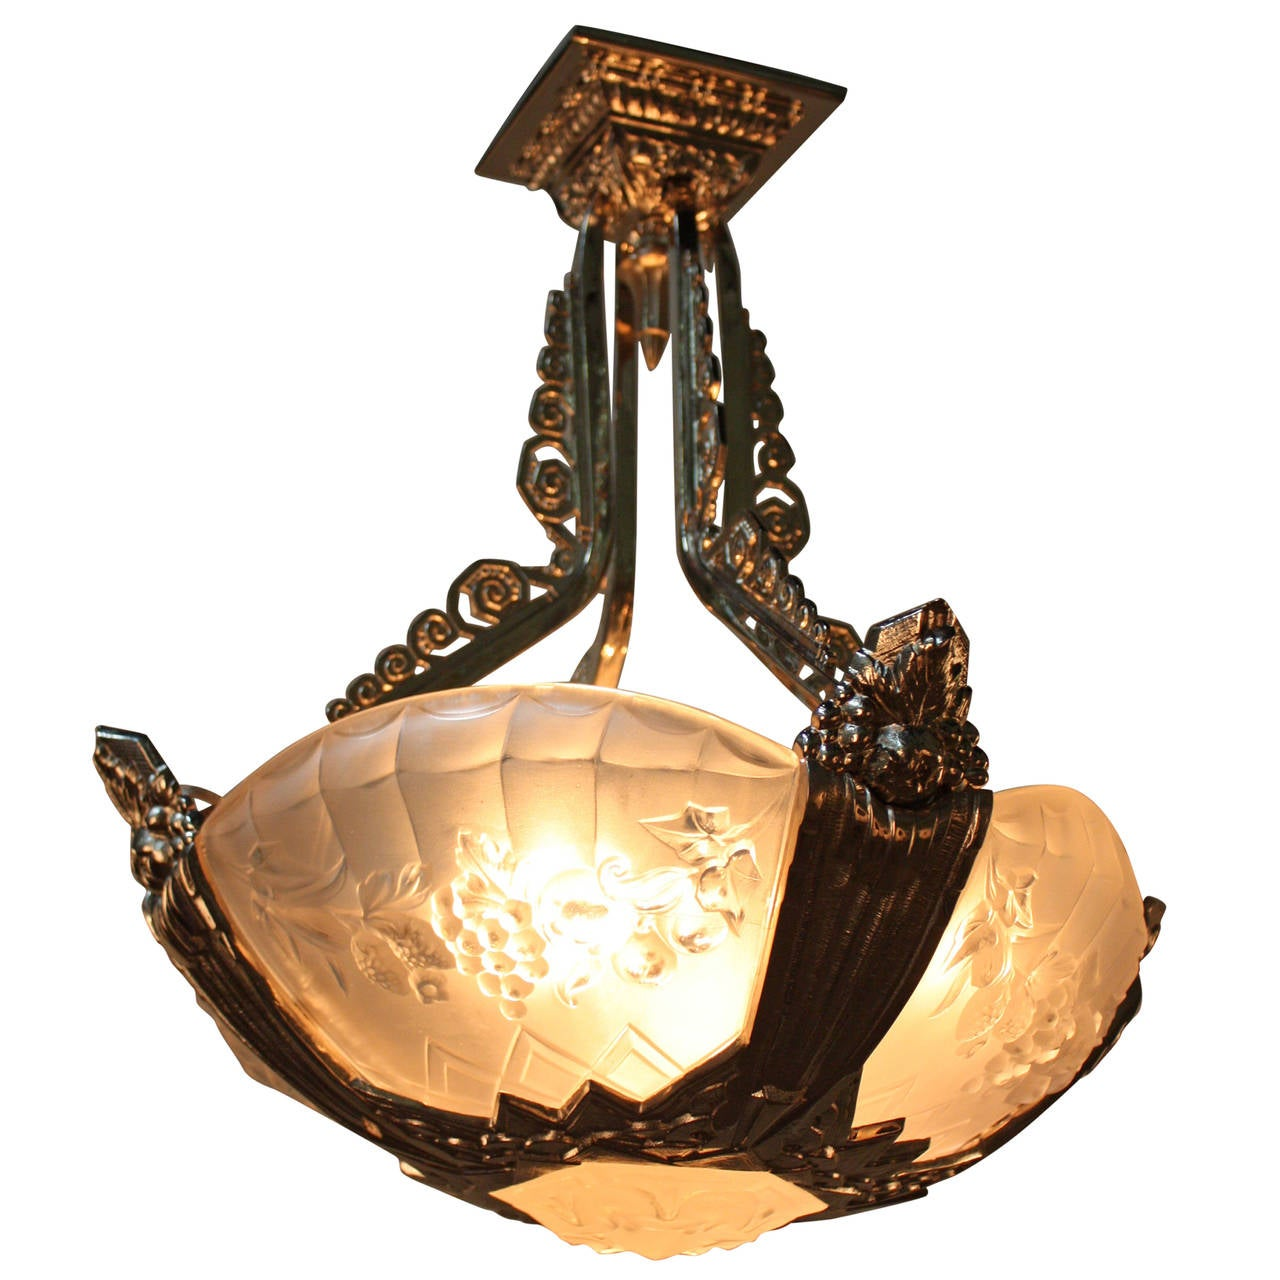 1930s French Art Deco Chandelier by Gilles